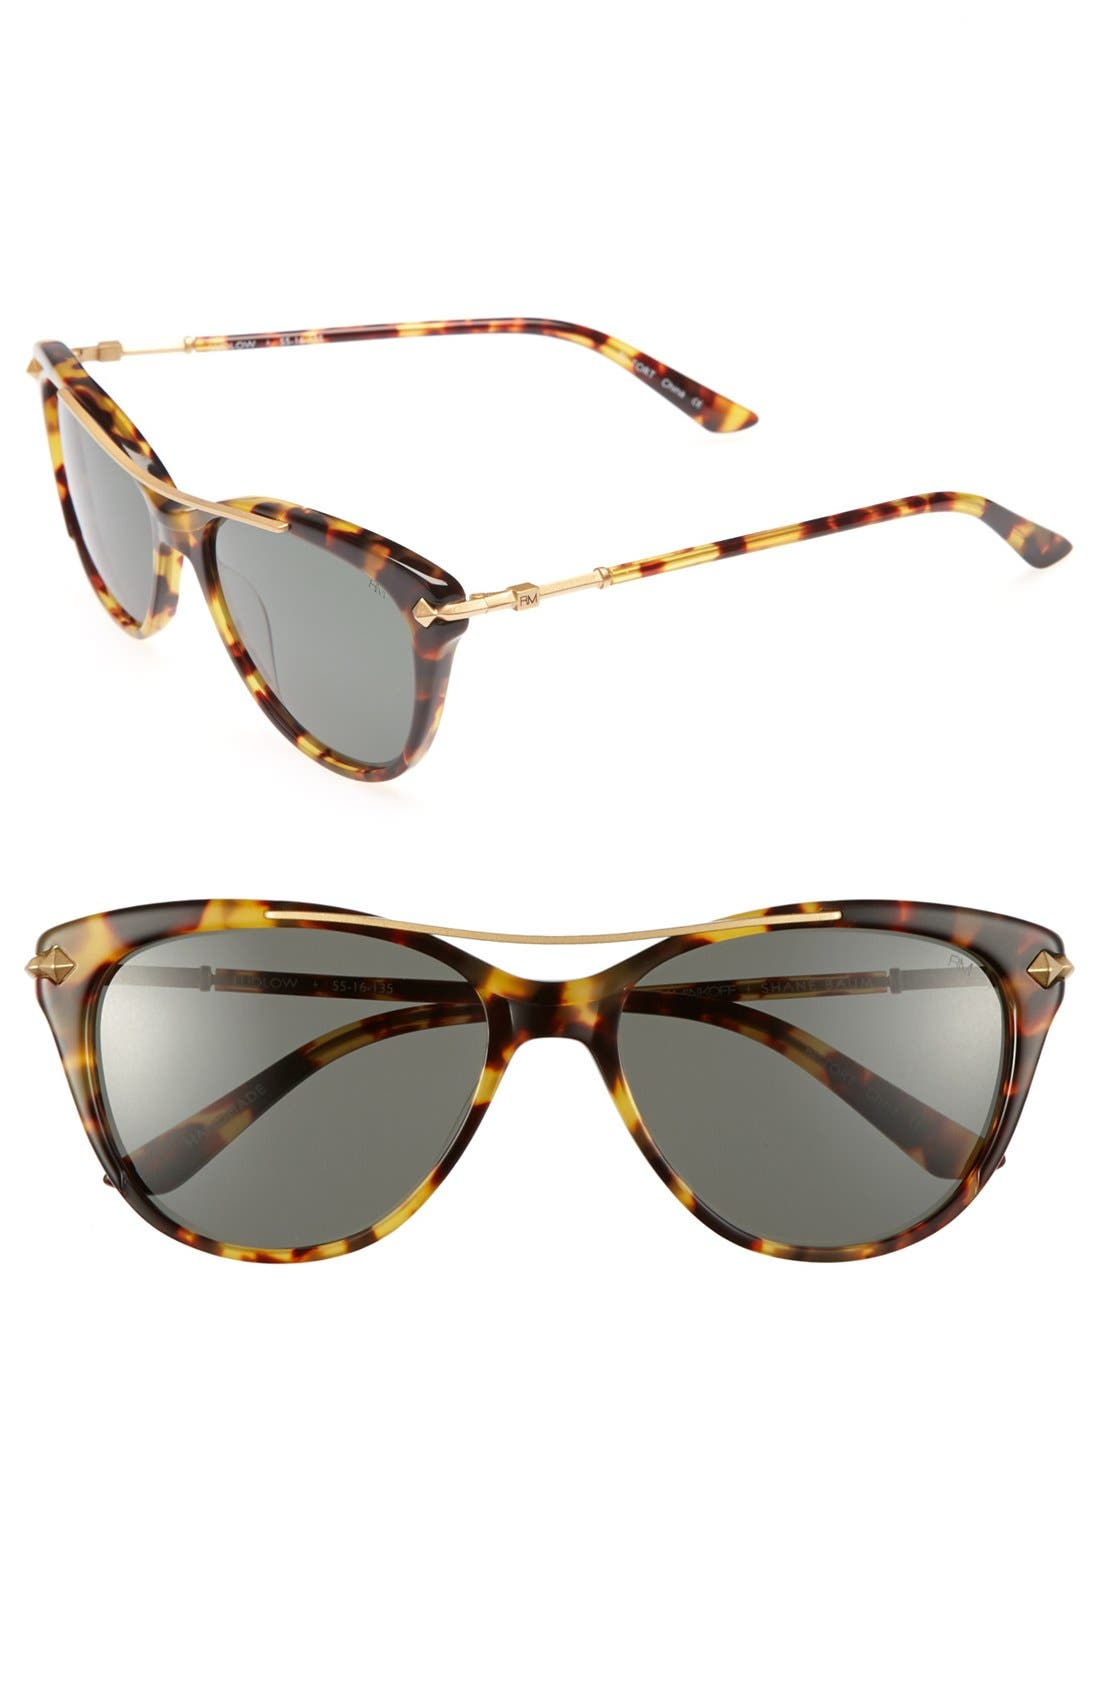 Alternate Image 1 Selected - Rebecca Minkoff 'Ludlow' 55mm Sunglasses